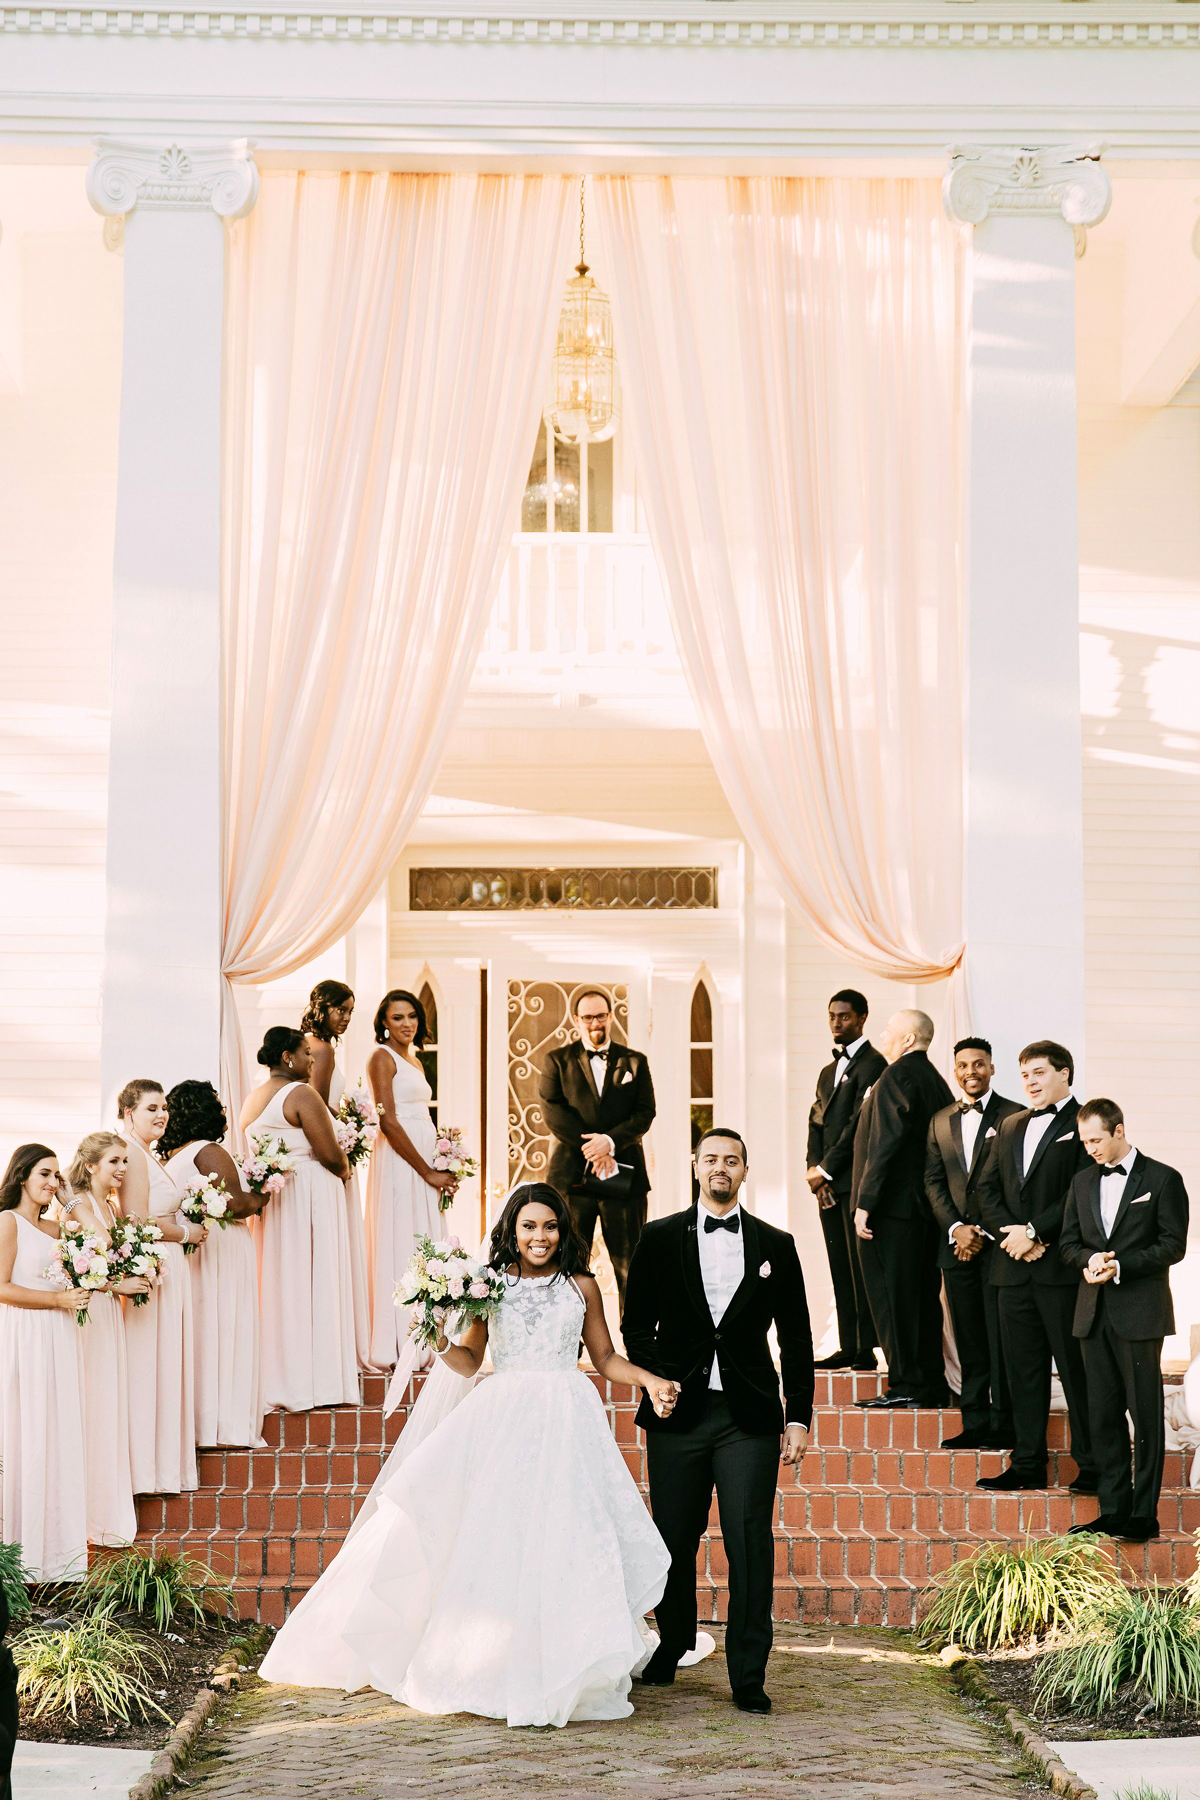 wedding recessional couple walking down steps of porch